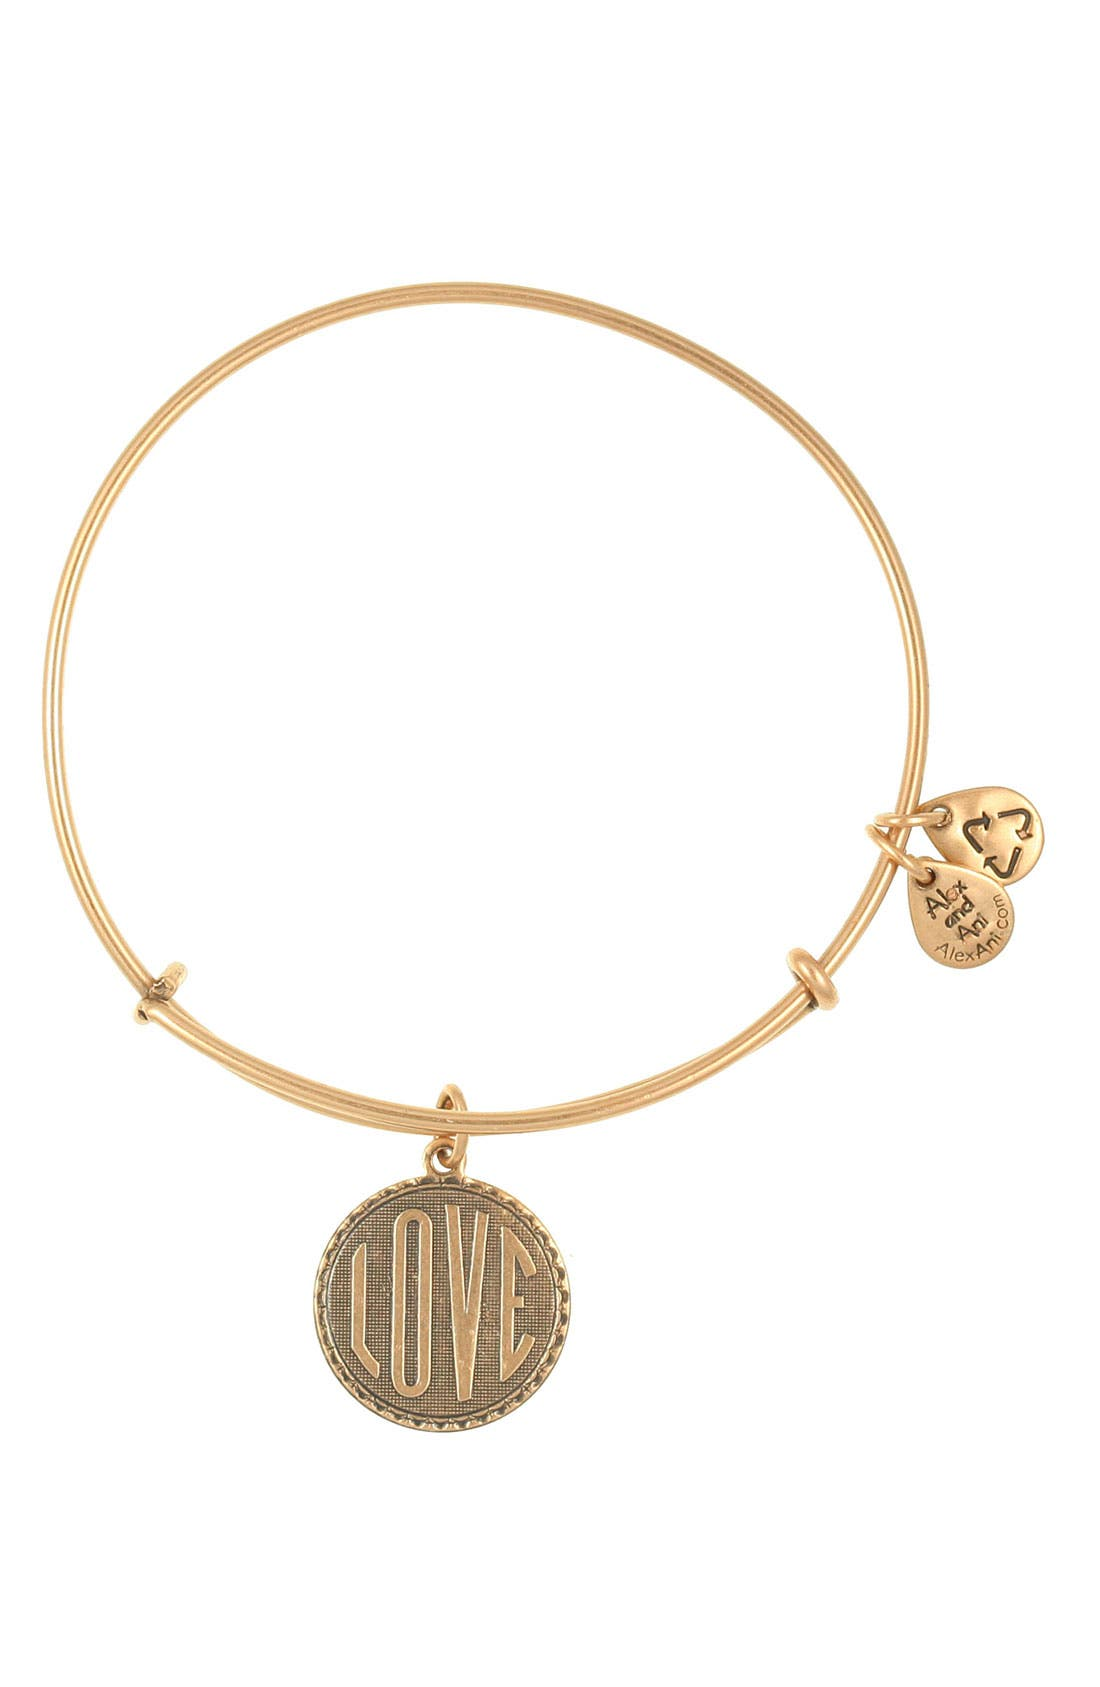 Main Image - Alex and Ani 'Love' Expandable Wire Bangle